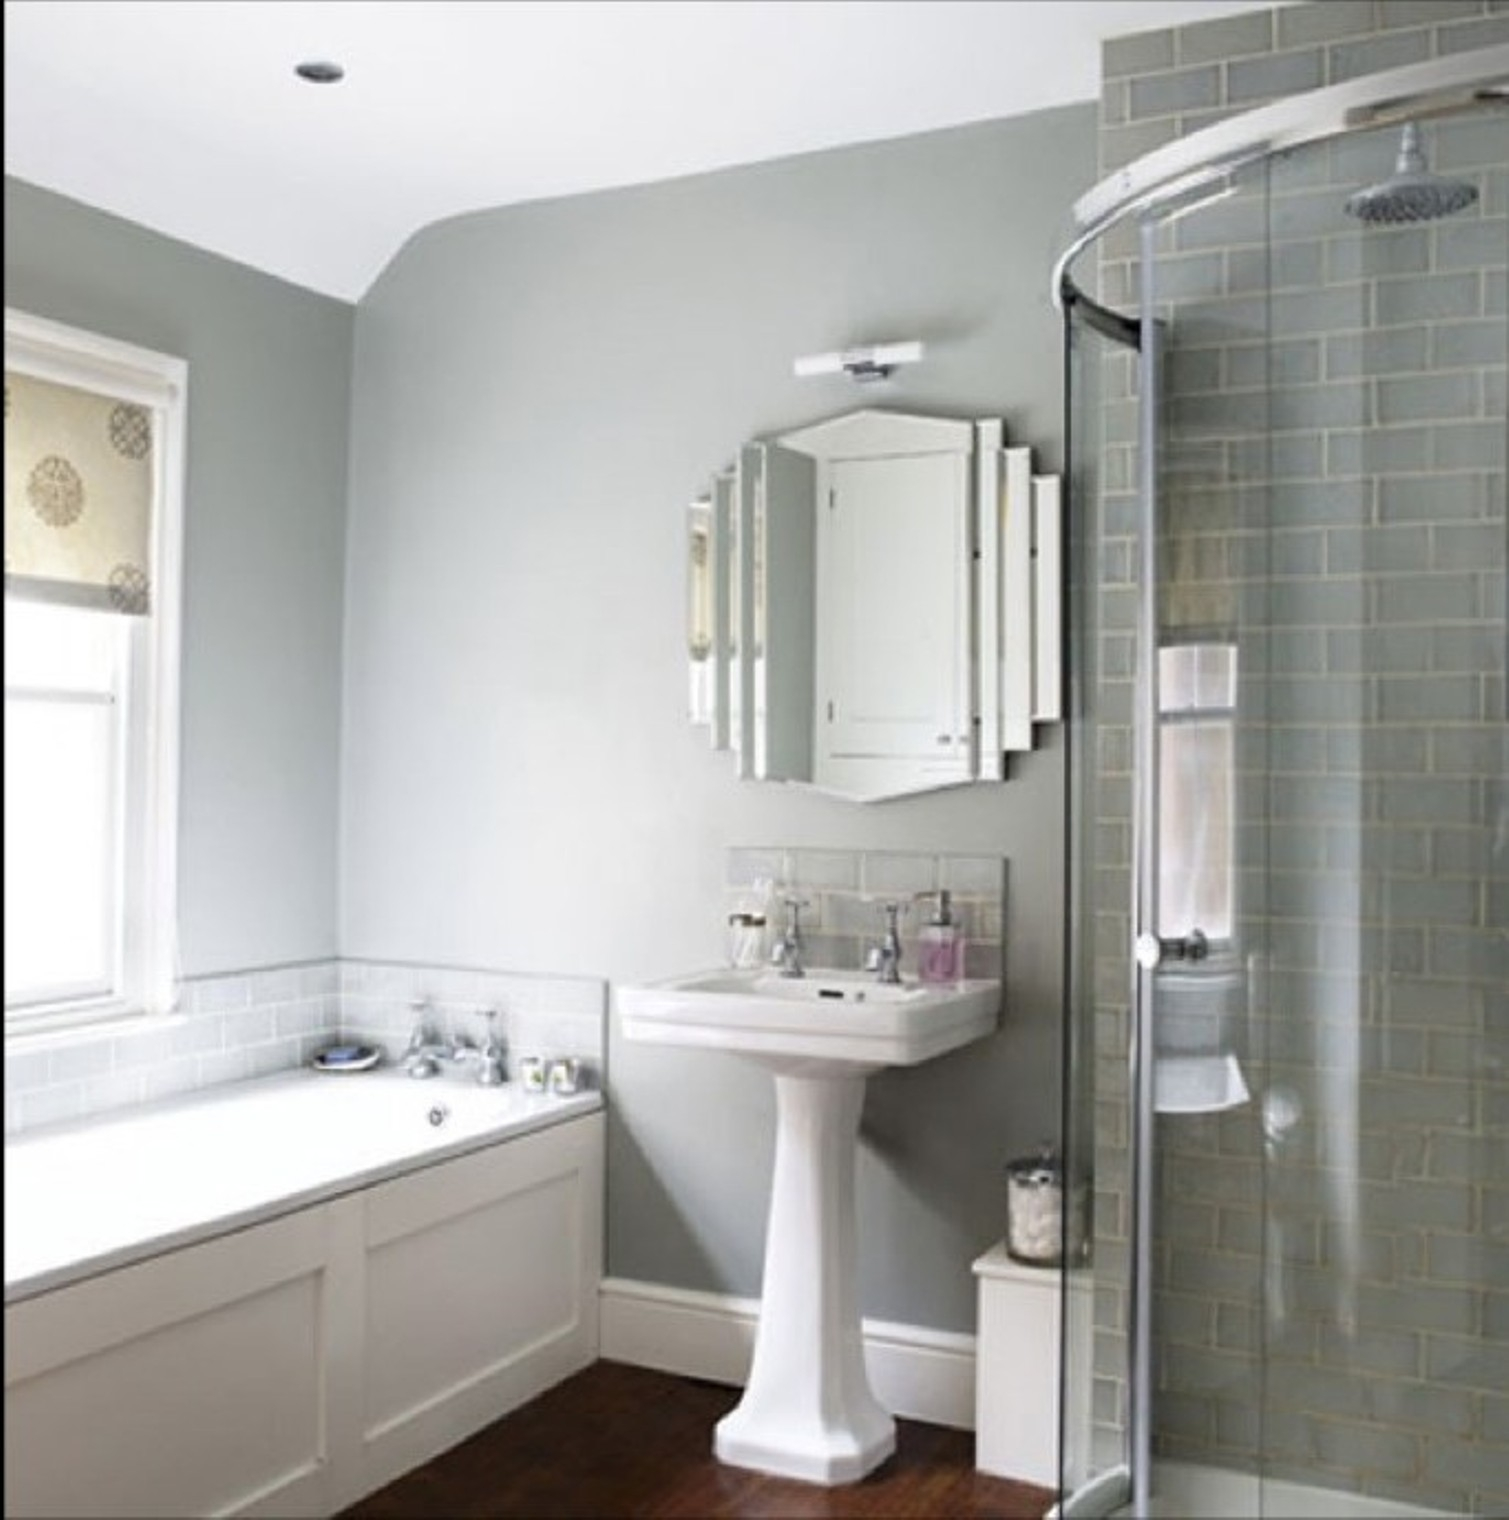 Fancy Victorian Style Bathroom Models 1509×1520 Eurekahouseco Pertaining To Victorian Style Mirrors For Bathrooms (View 13 of 15)